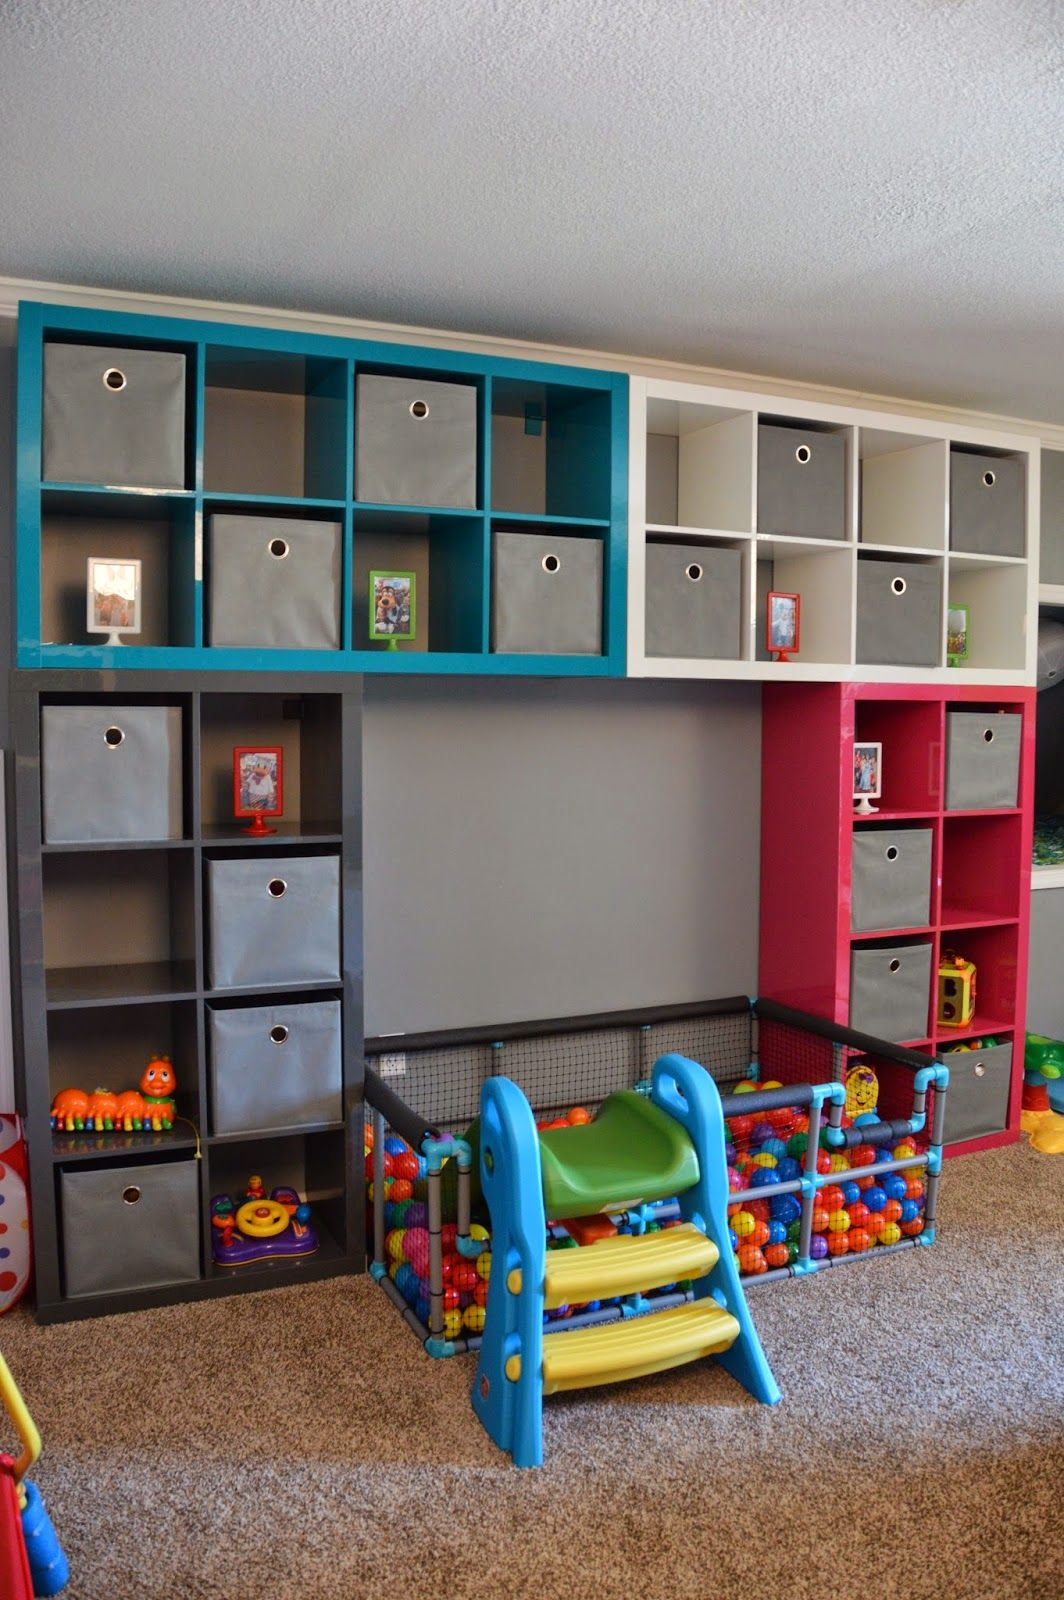 7 1 toy storage ideas diy plans in a small space your for Kids room storage ideas